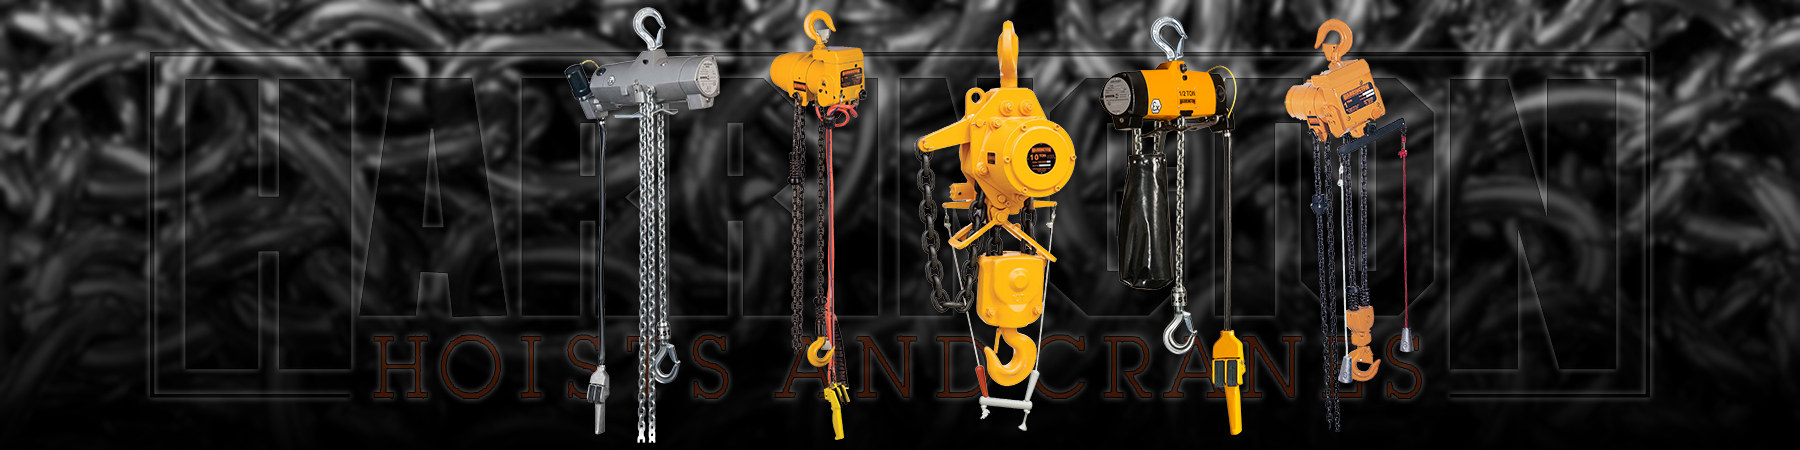 Harrington Pneumatic Chain Hoists